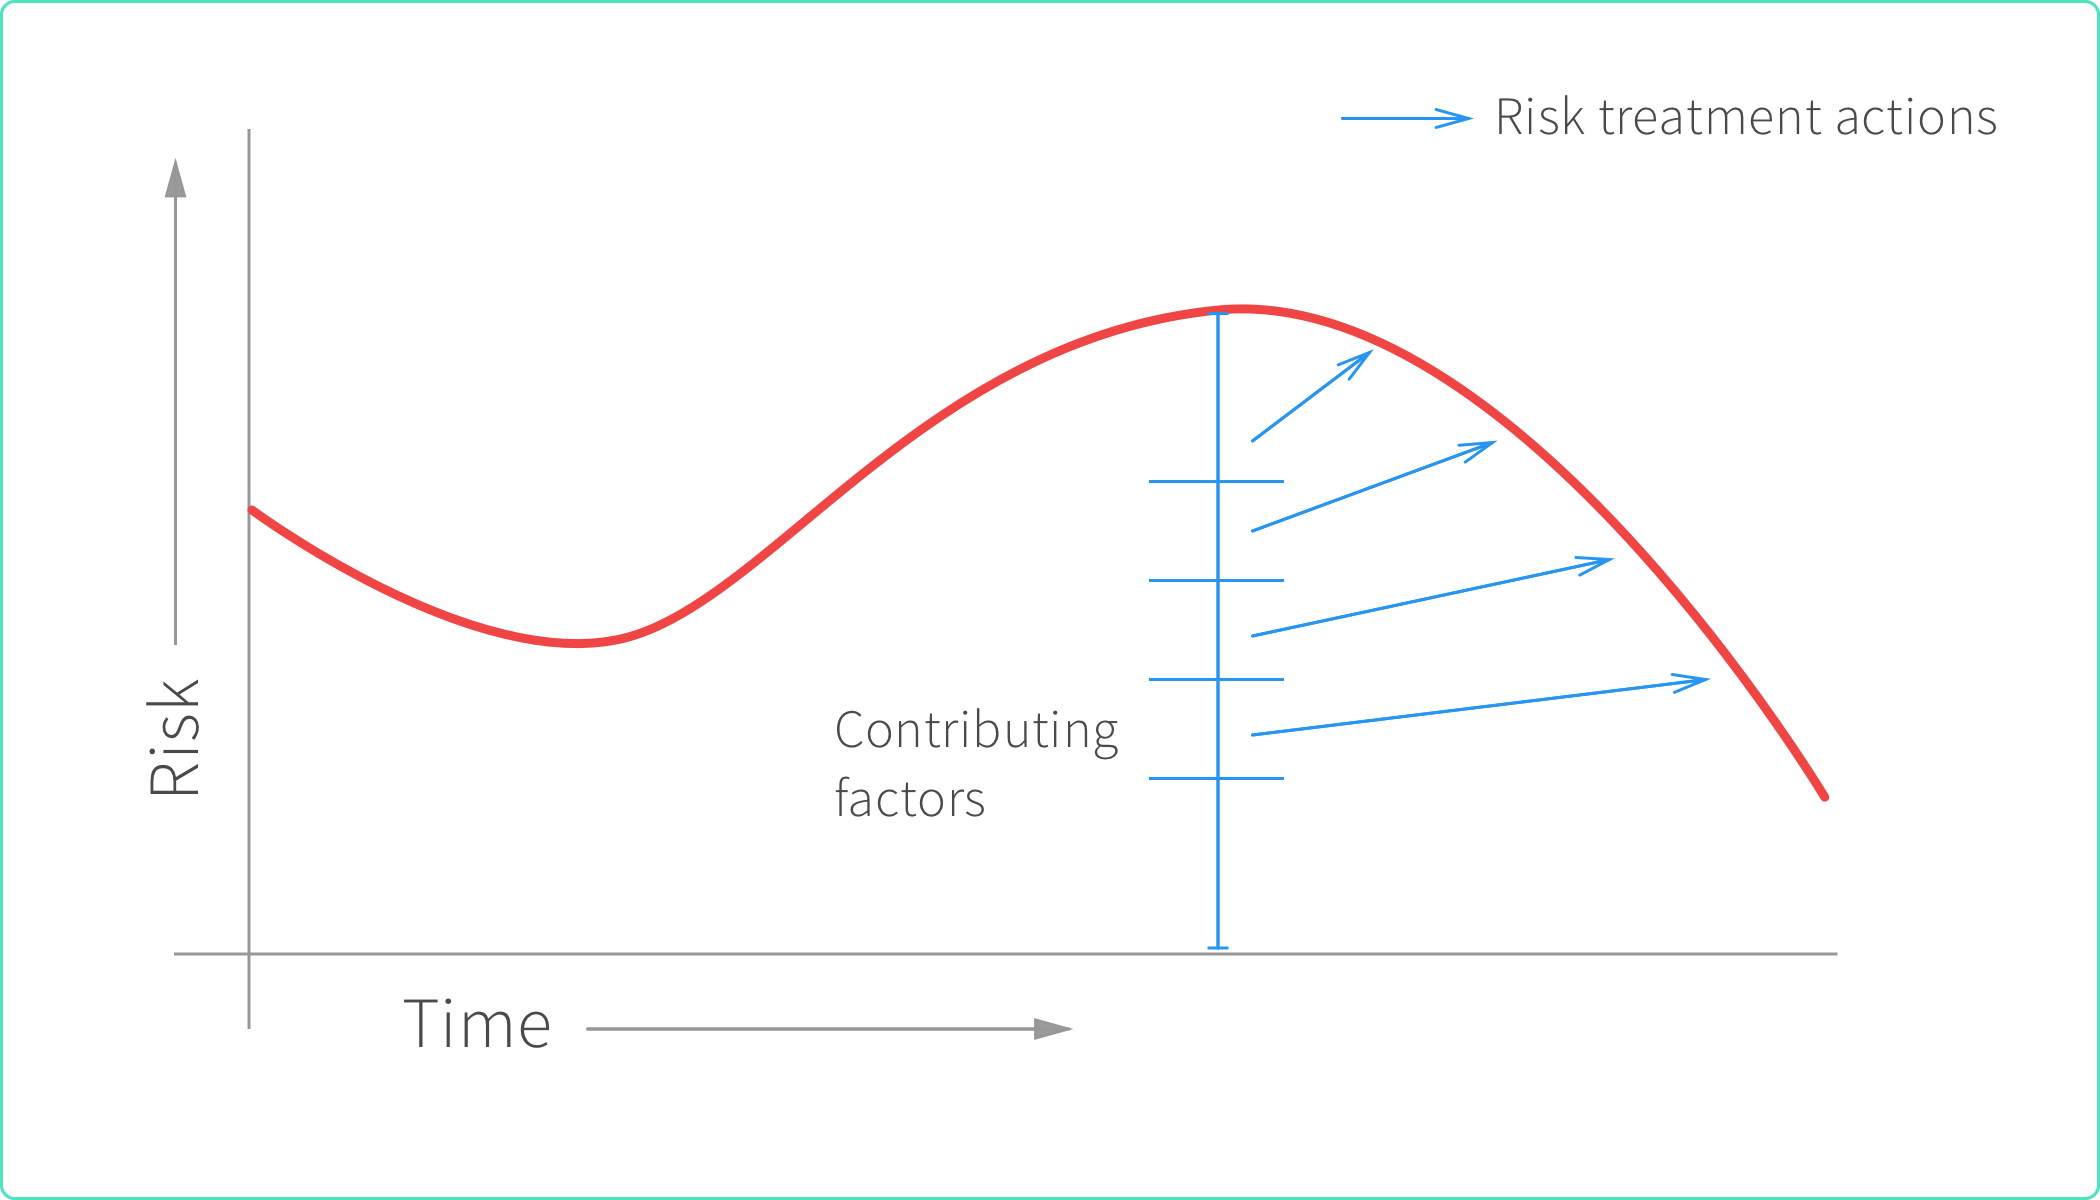 Reducing level of risk.